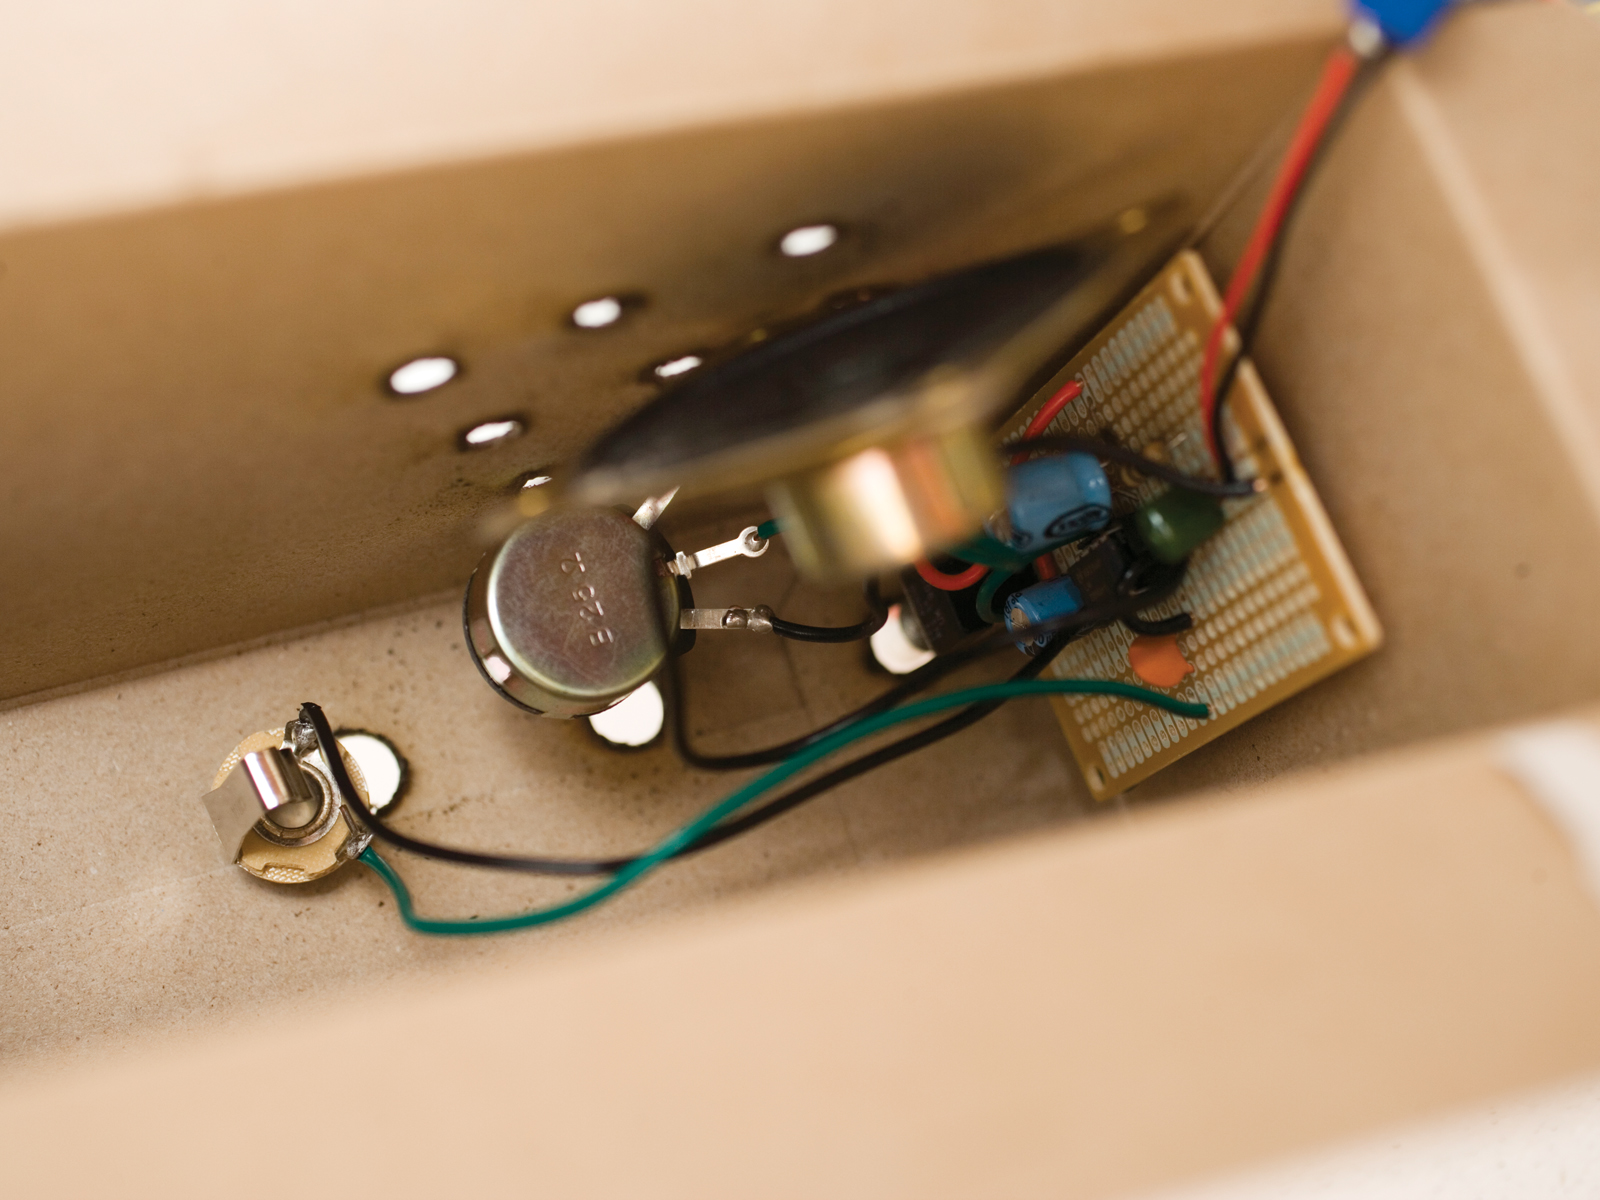 The $5 Cracker Box Amp